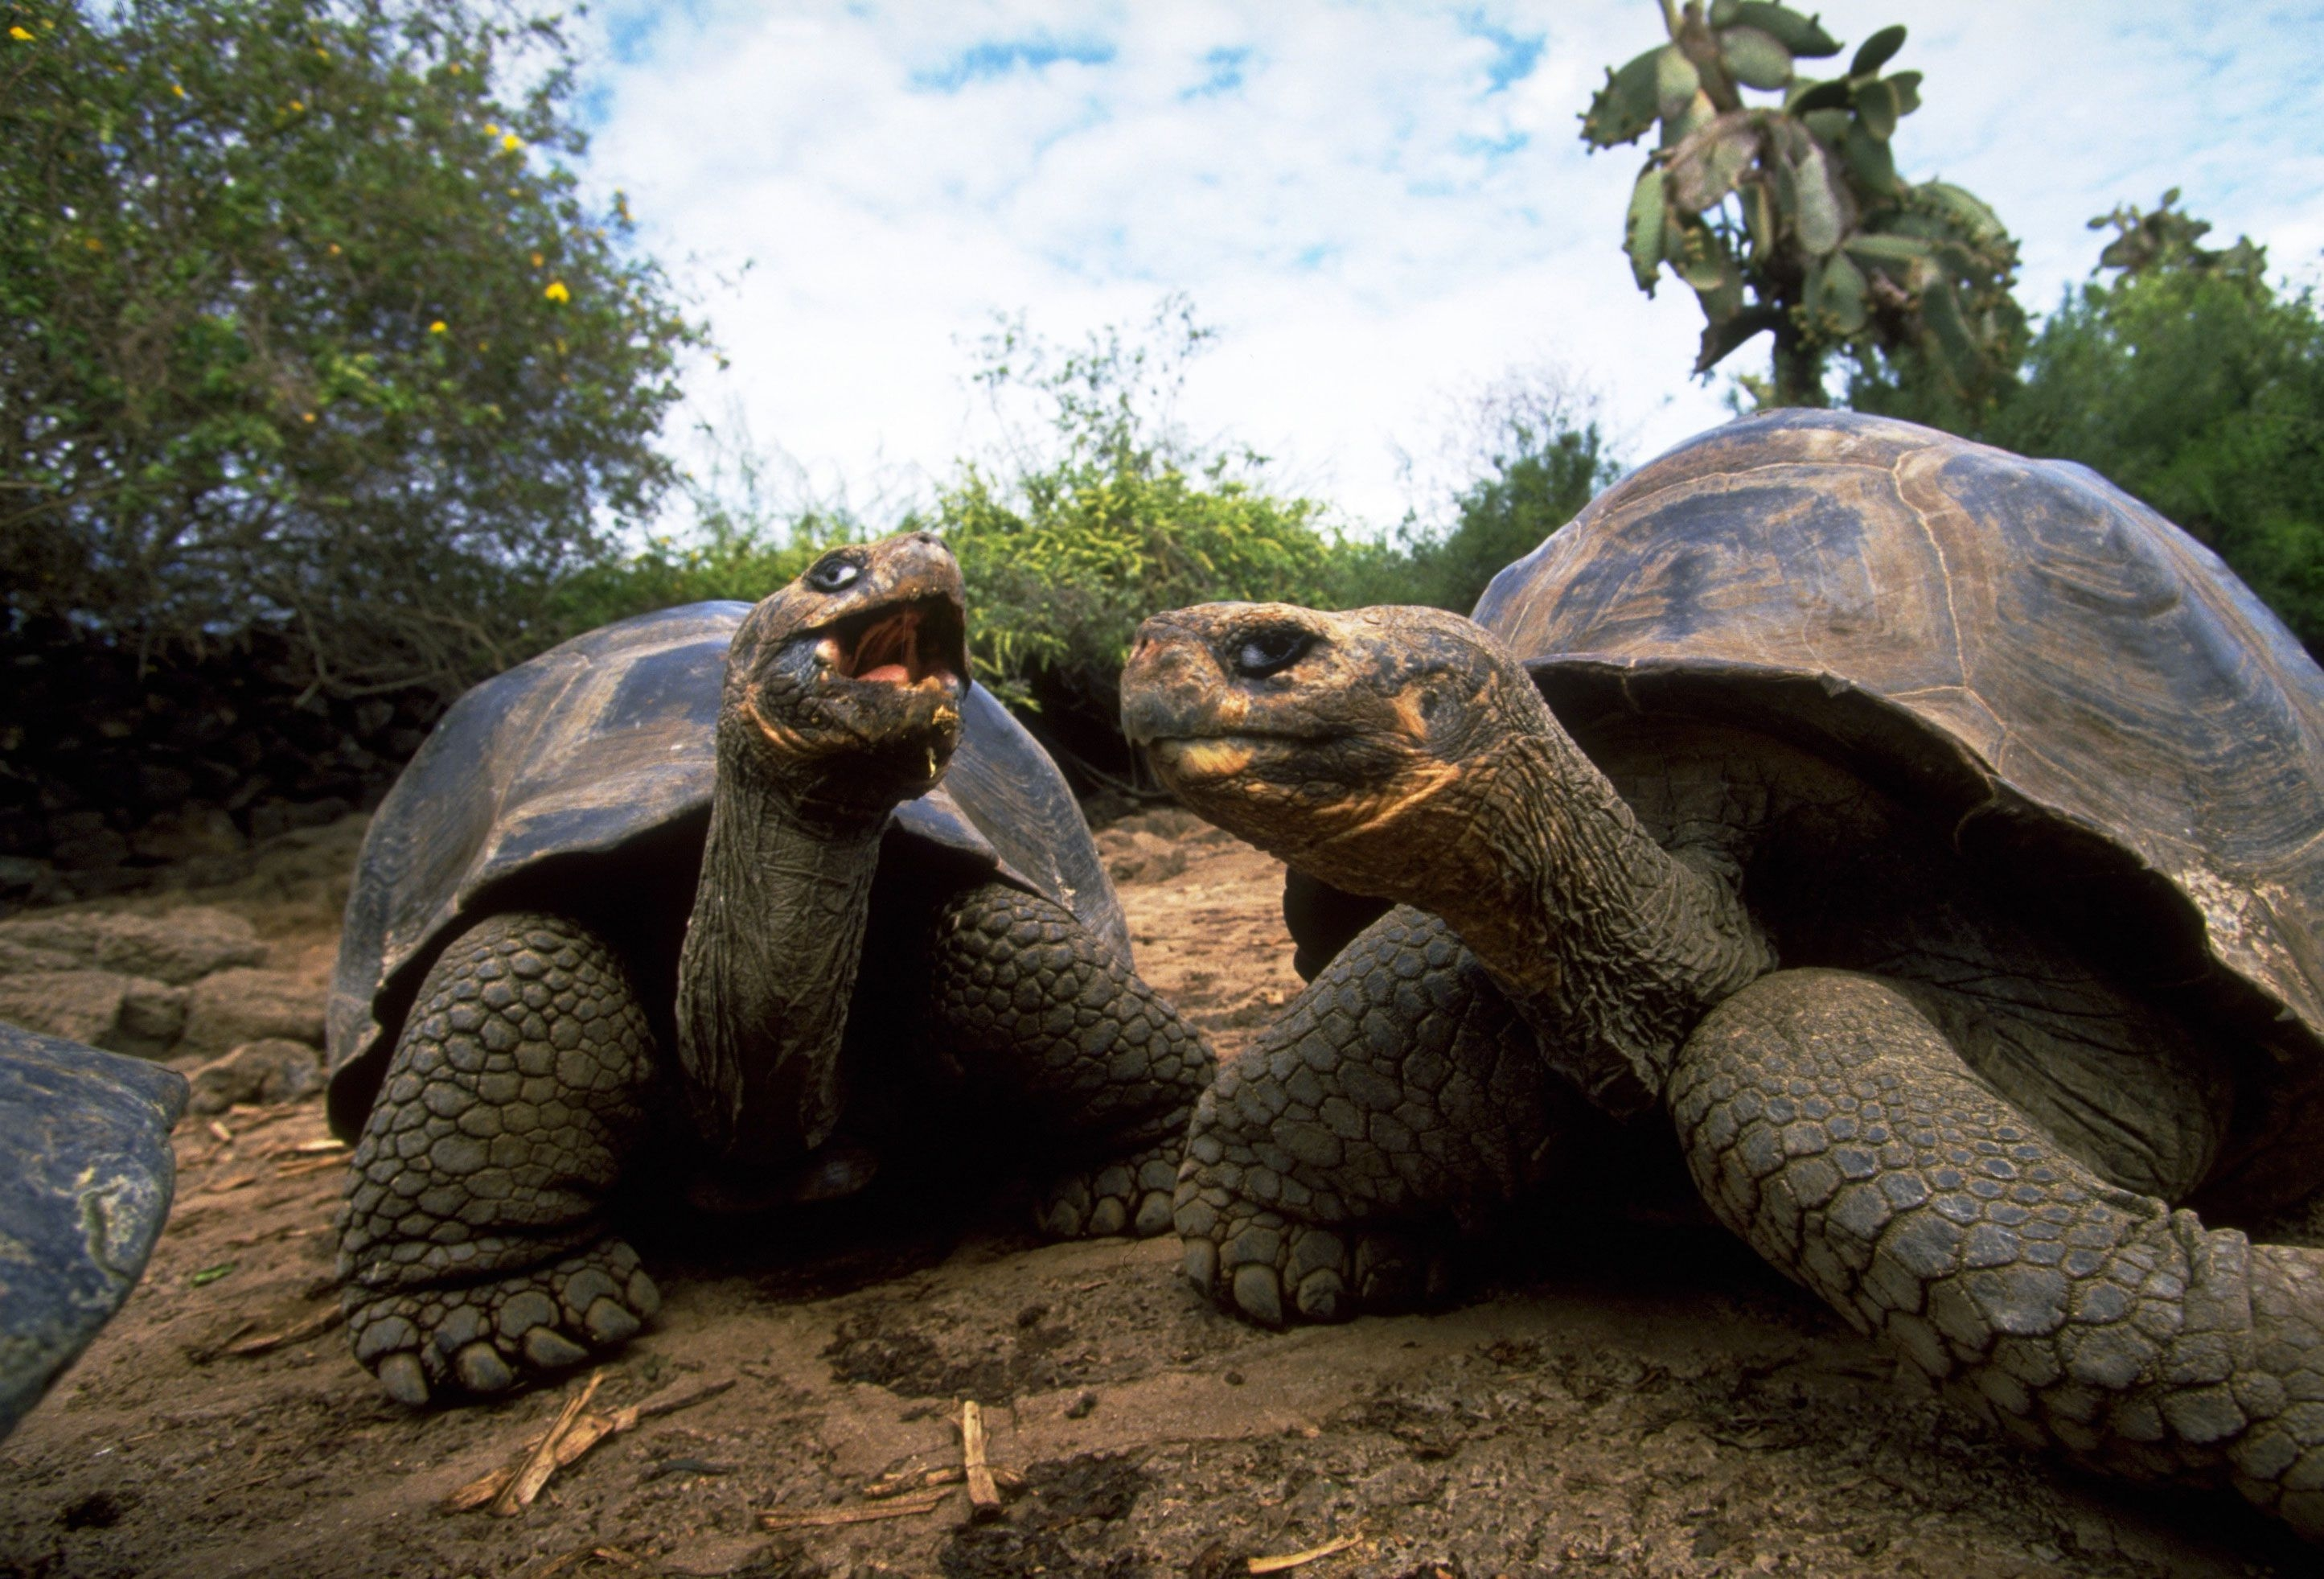 51390 download wallpaper Animals, Turtles, Couple, Pair, Reptiles, Mud, Dirt screensavers and pictures for free